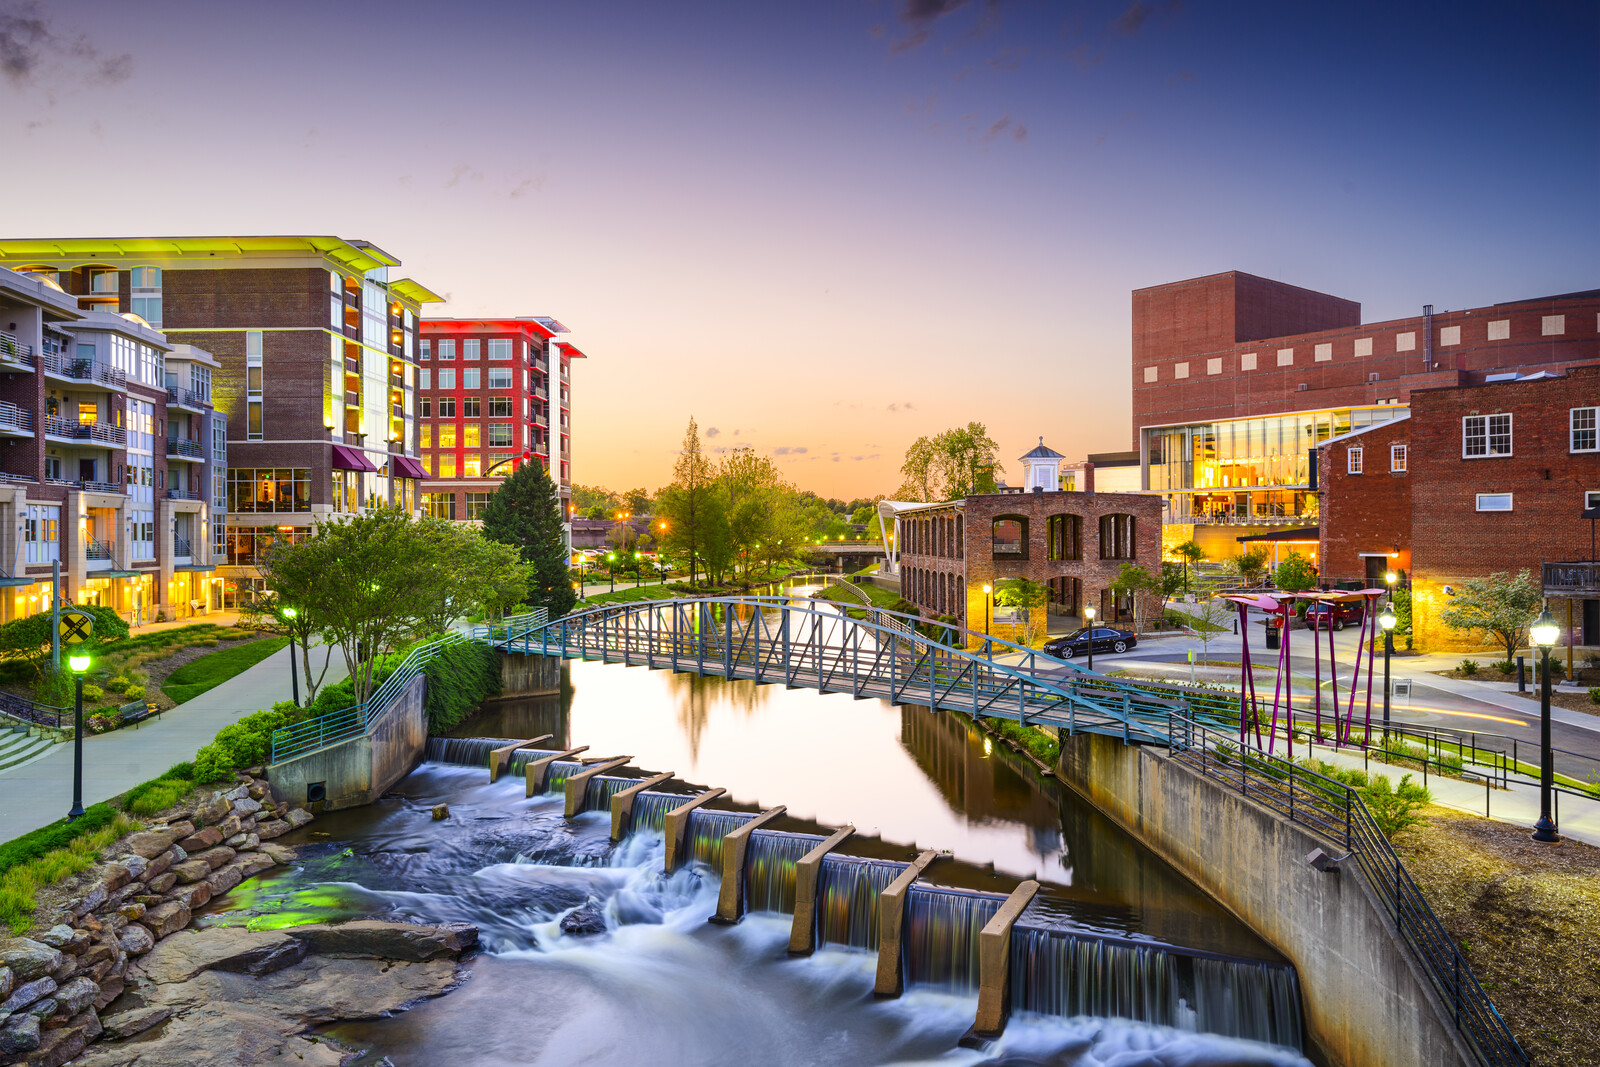 Greenville city-scape with a footbridge over the river and waterfall at sunset